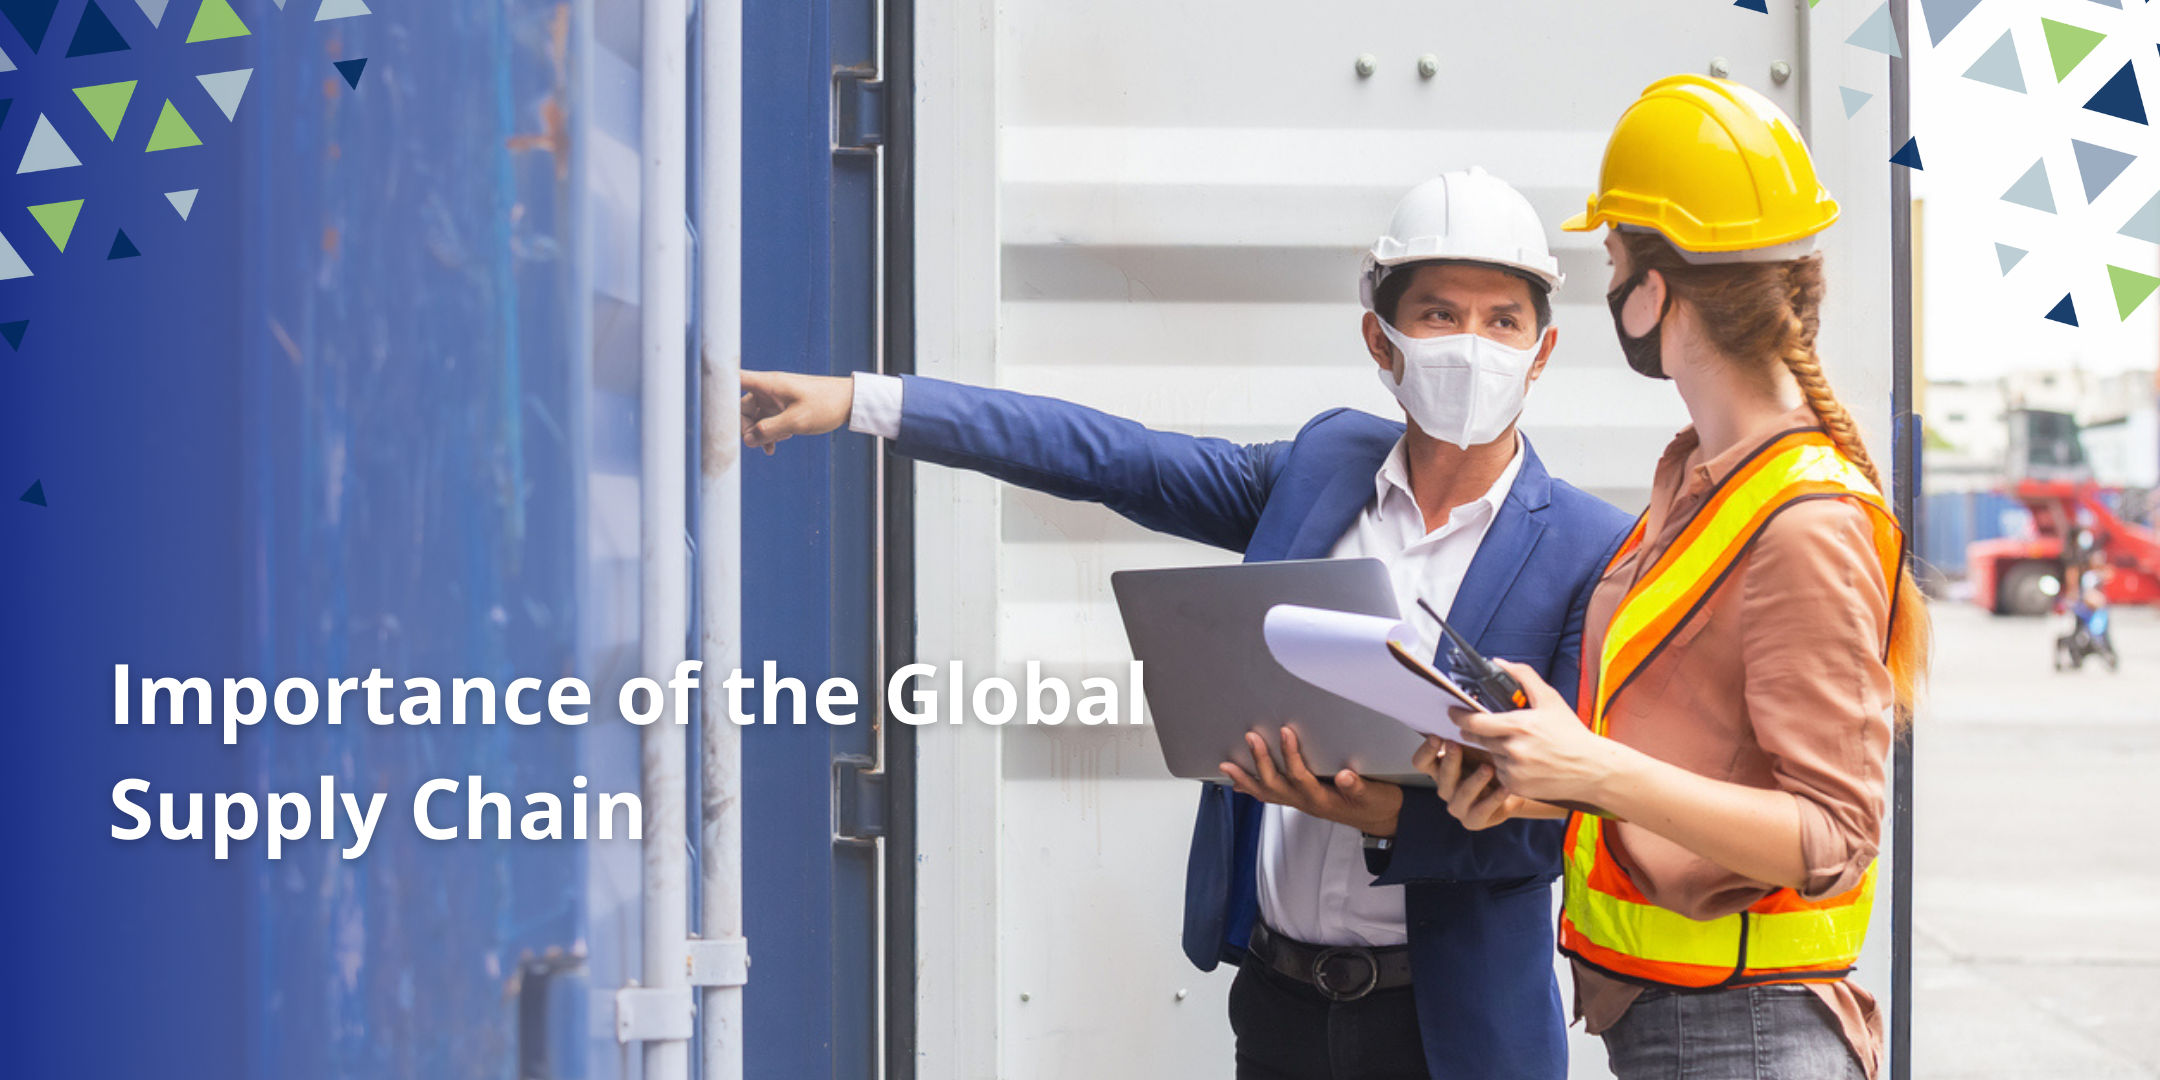 Importance of the Global Supply Chain featured image